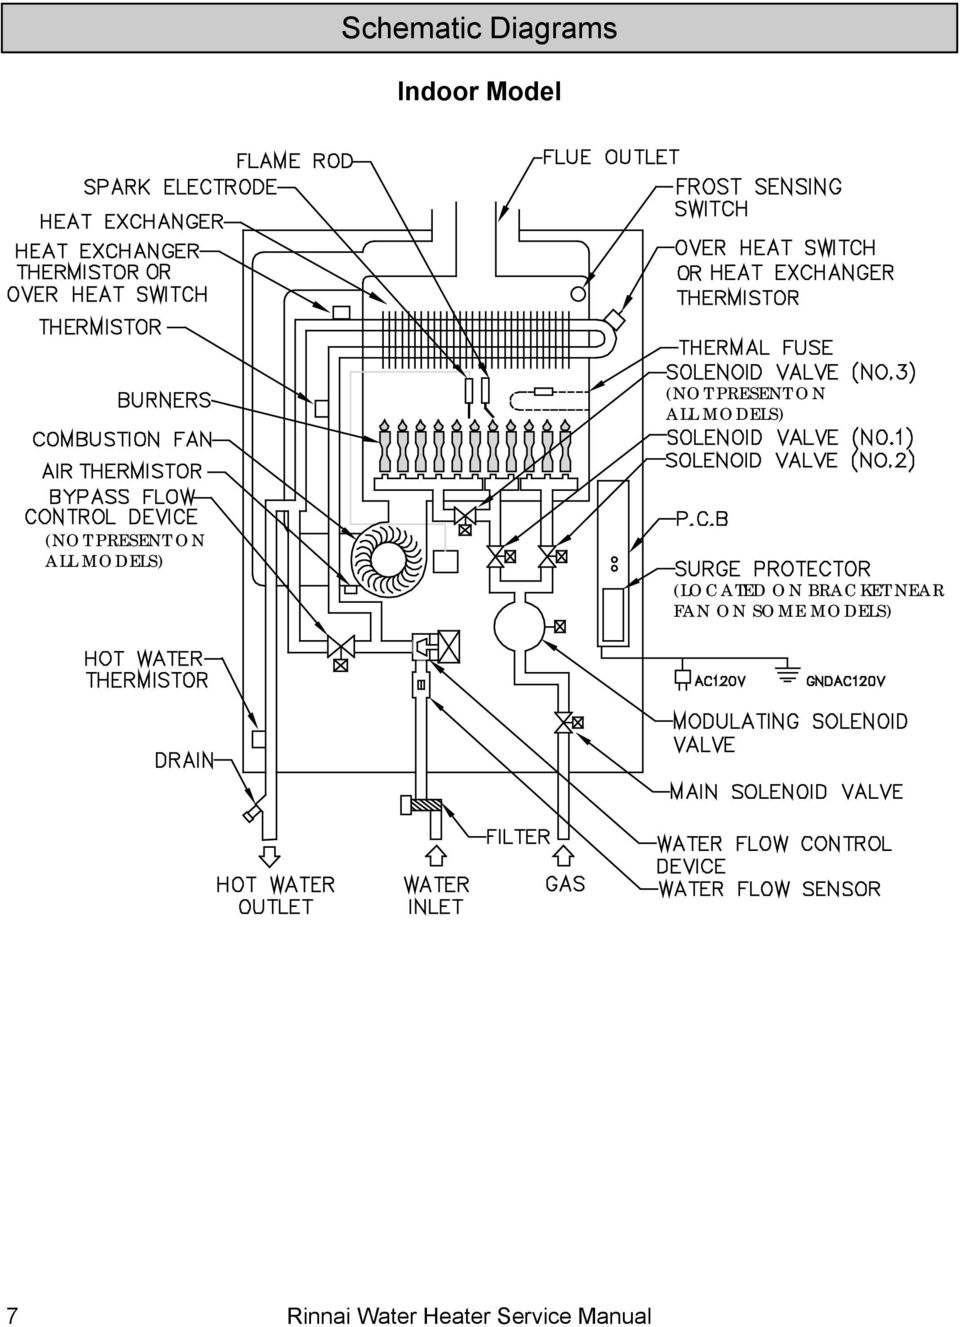 rinnai r85 gas valve wiring diagram 16 20 asyaunited de \u2022 Ire Thermistor Wiring-Diagram Two tankless water heater service manual pdf rh docplayer net honeywell gas valve wiring diagram millivolt gas valve wiring